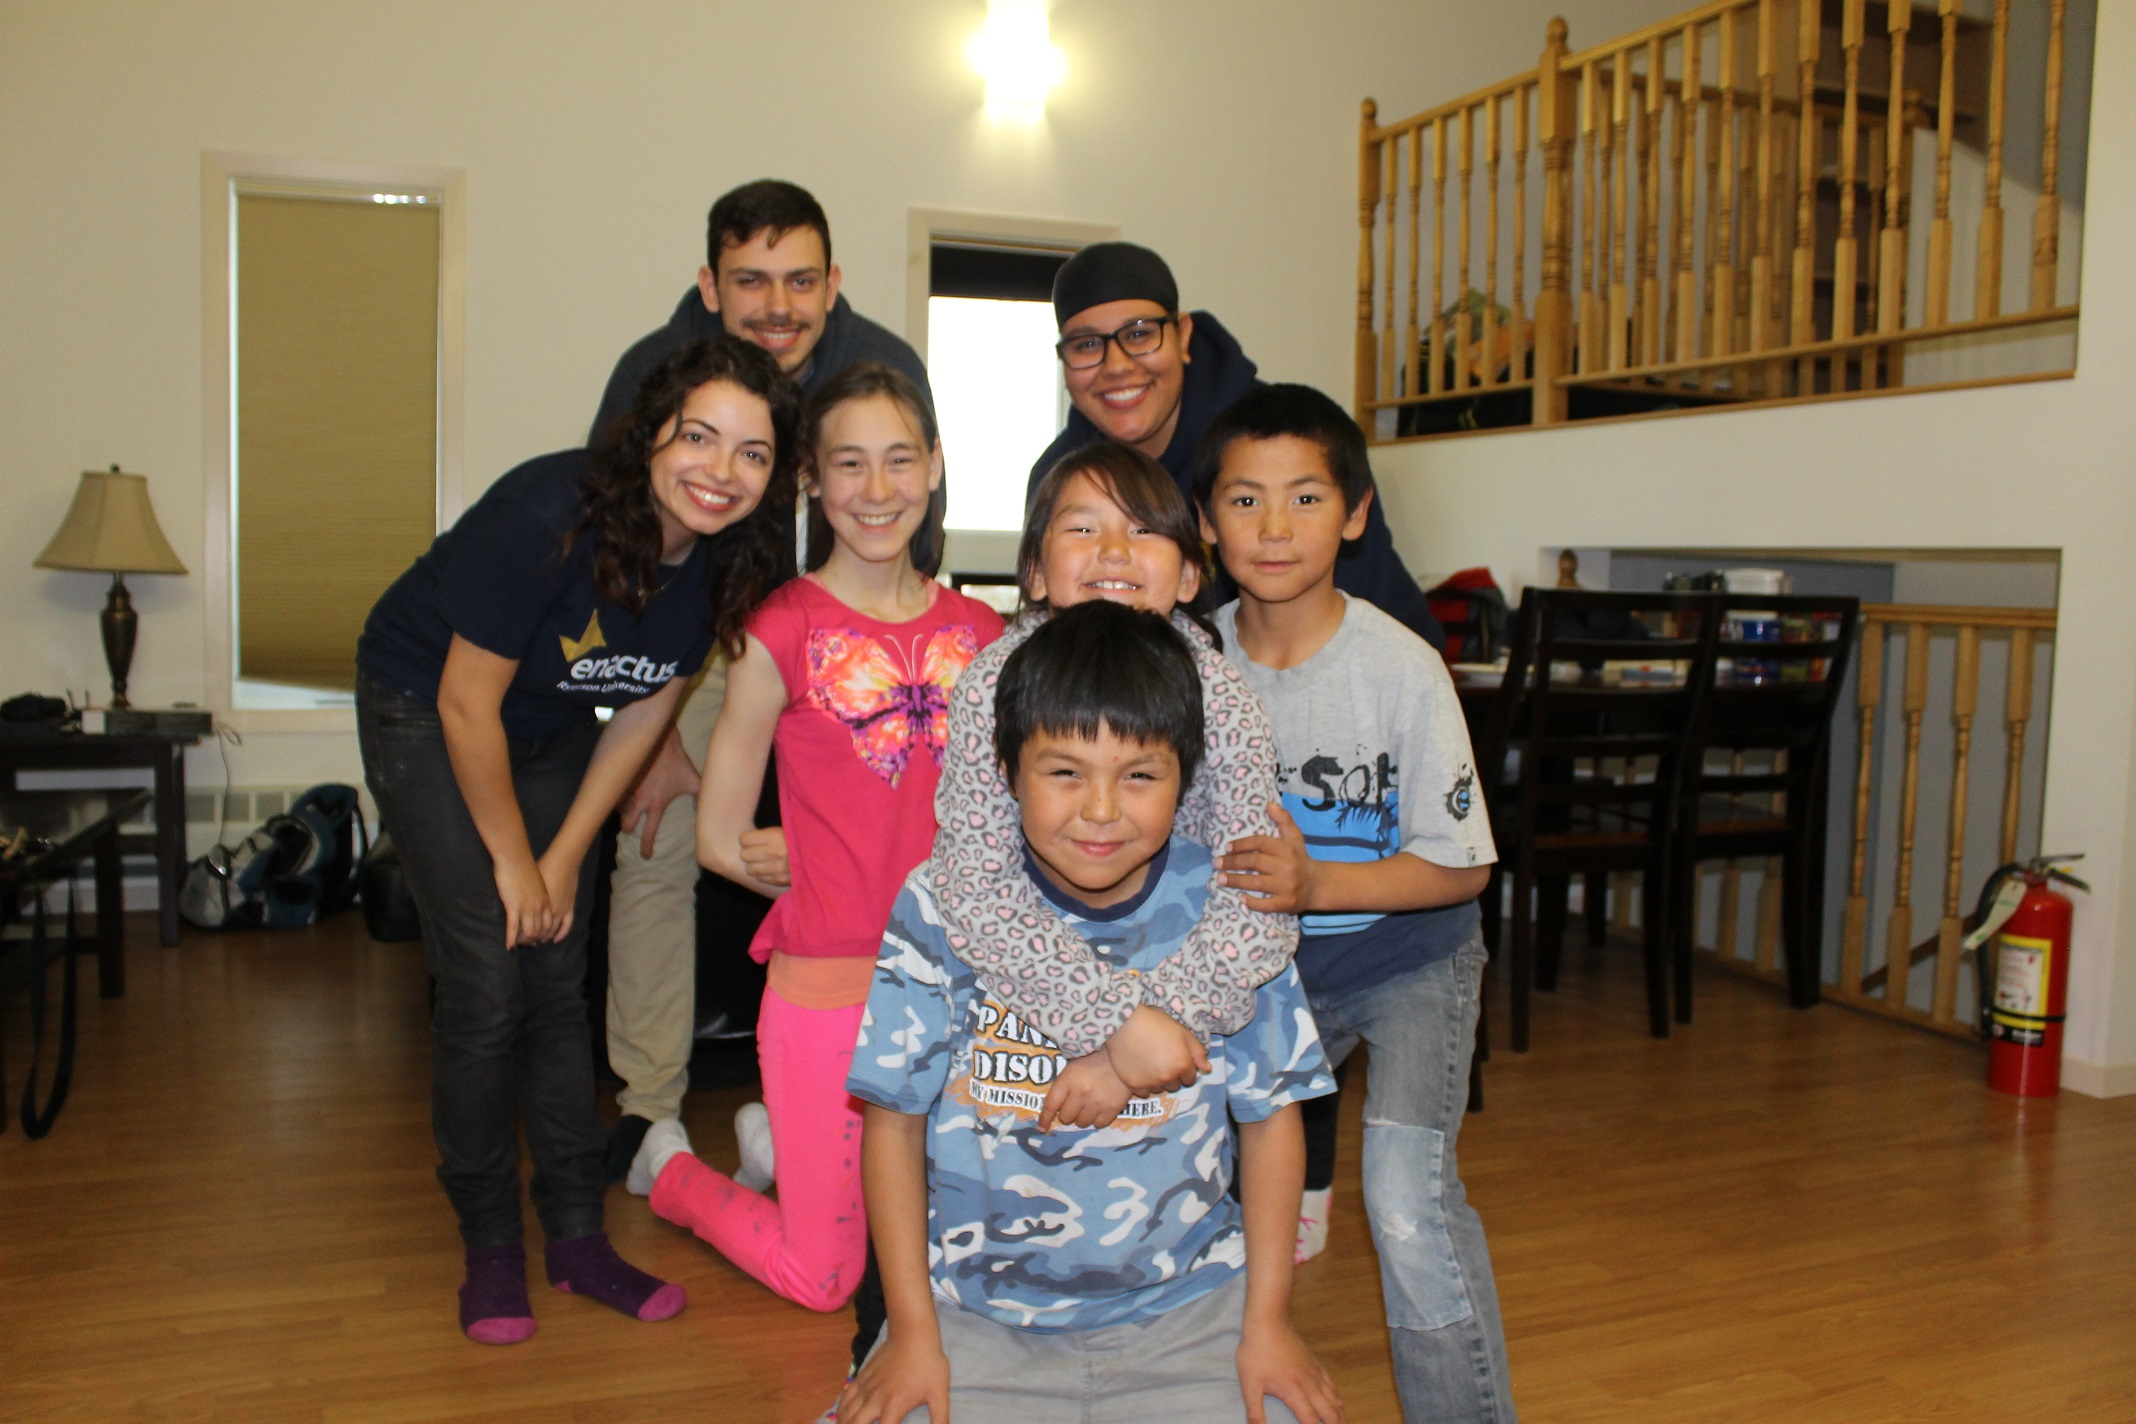 Members of Enactus Ryerson with local children